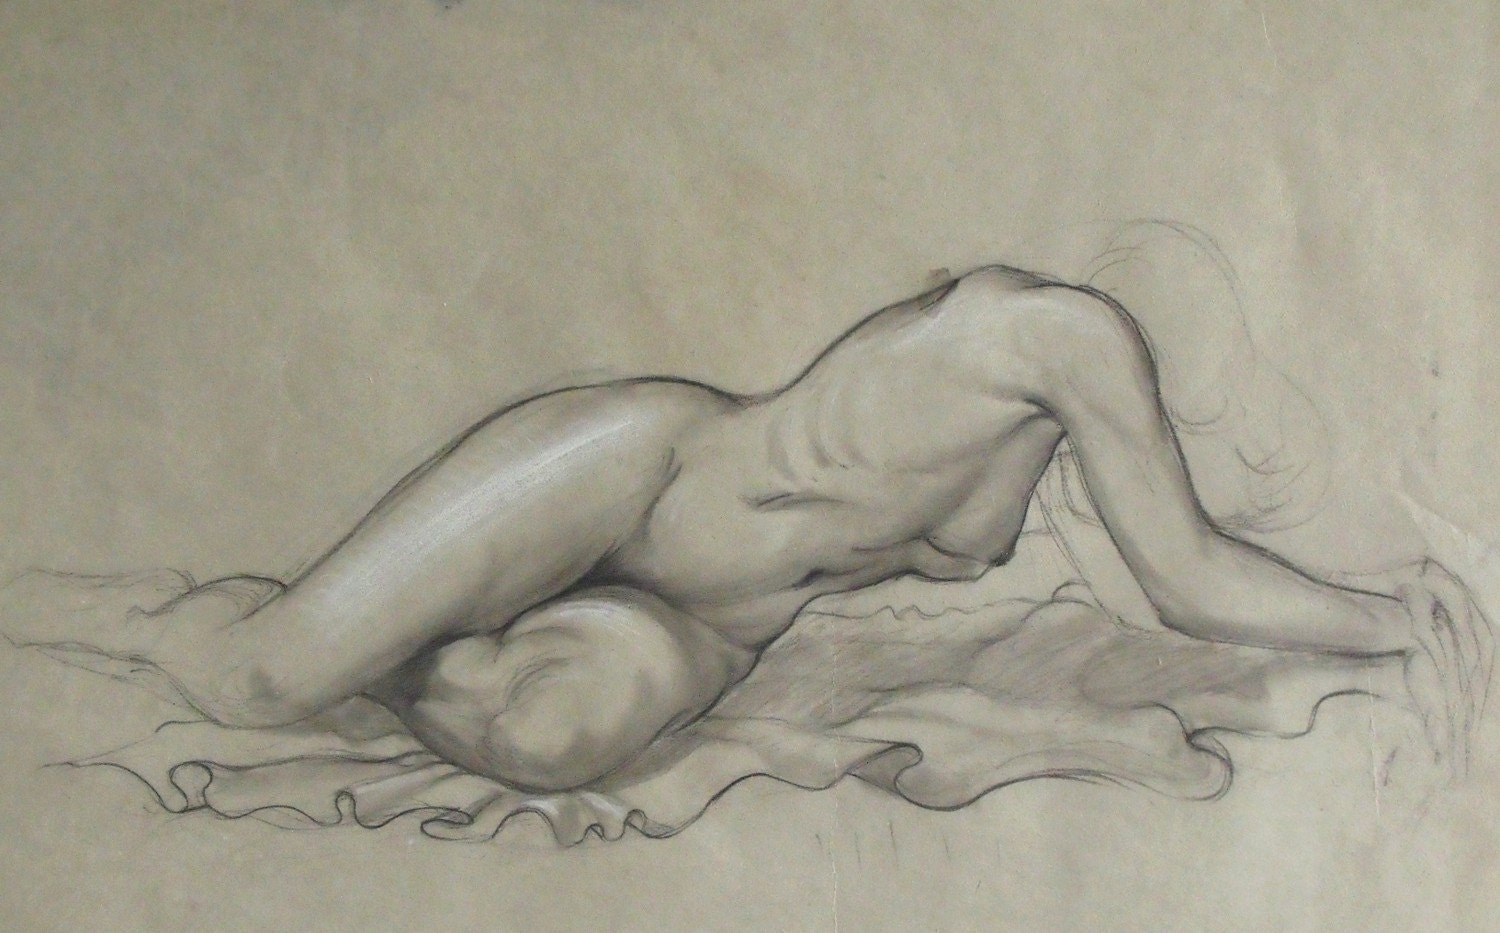 Nude male animated drawings exploited image